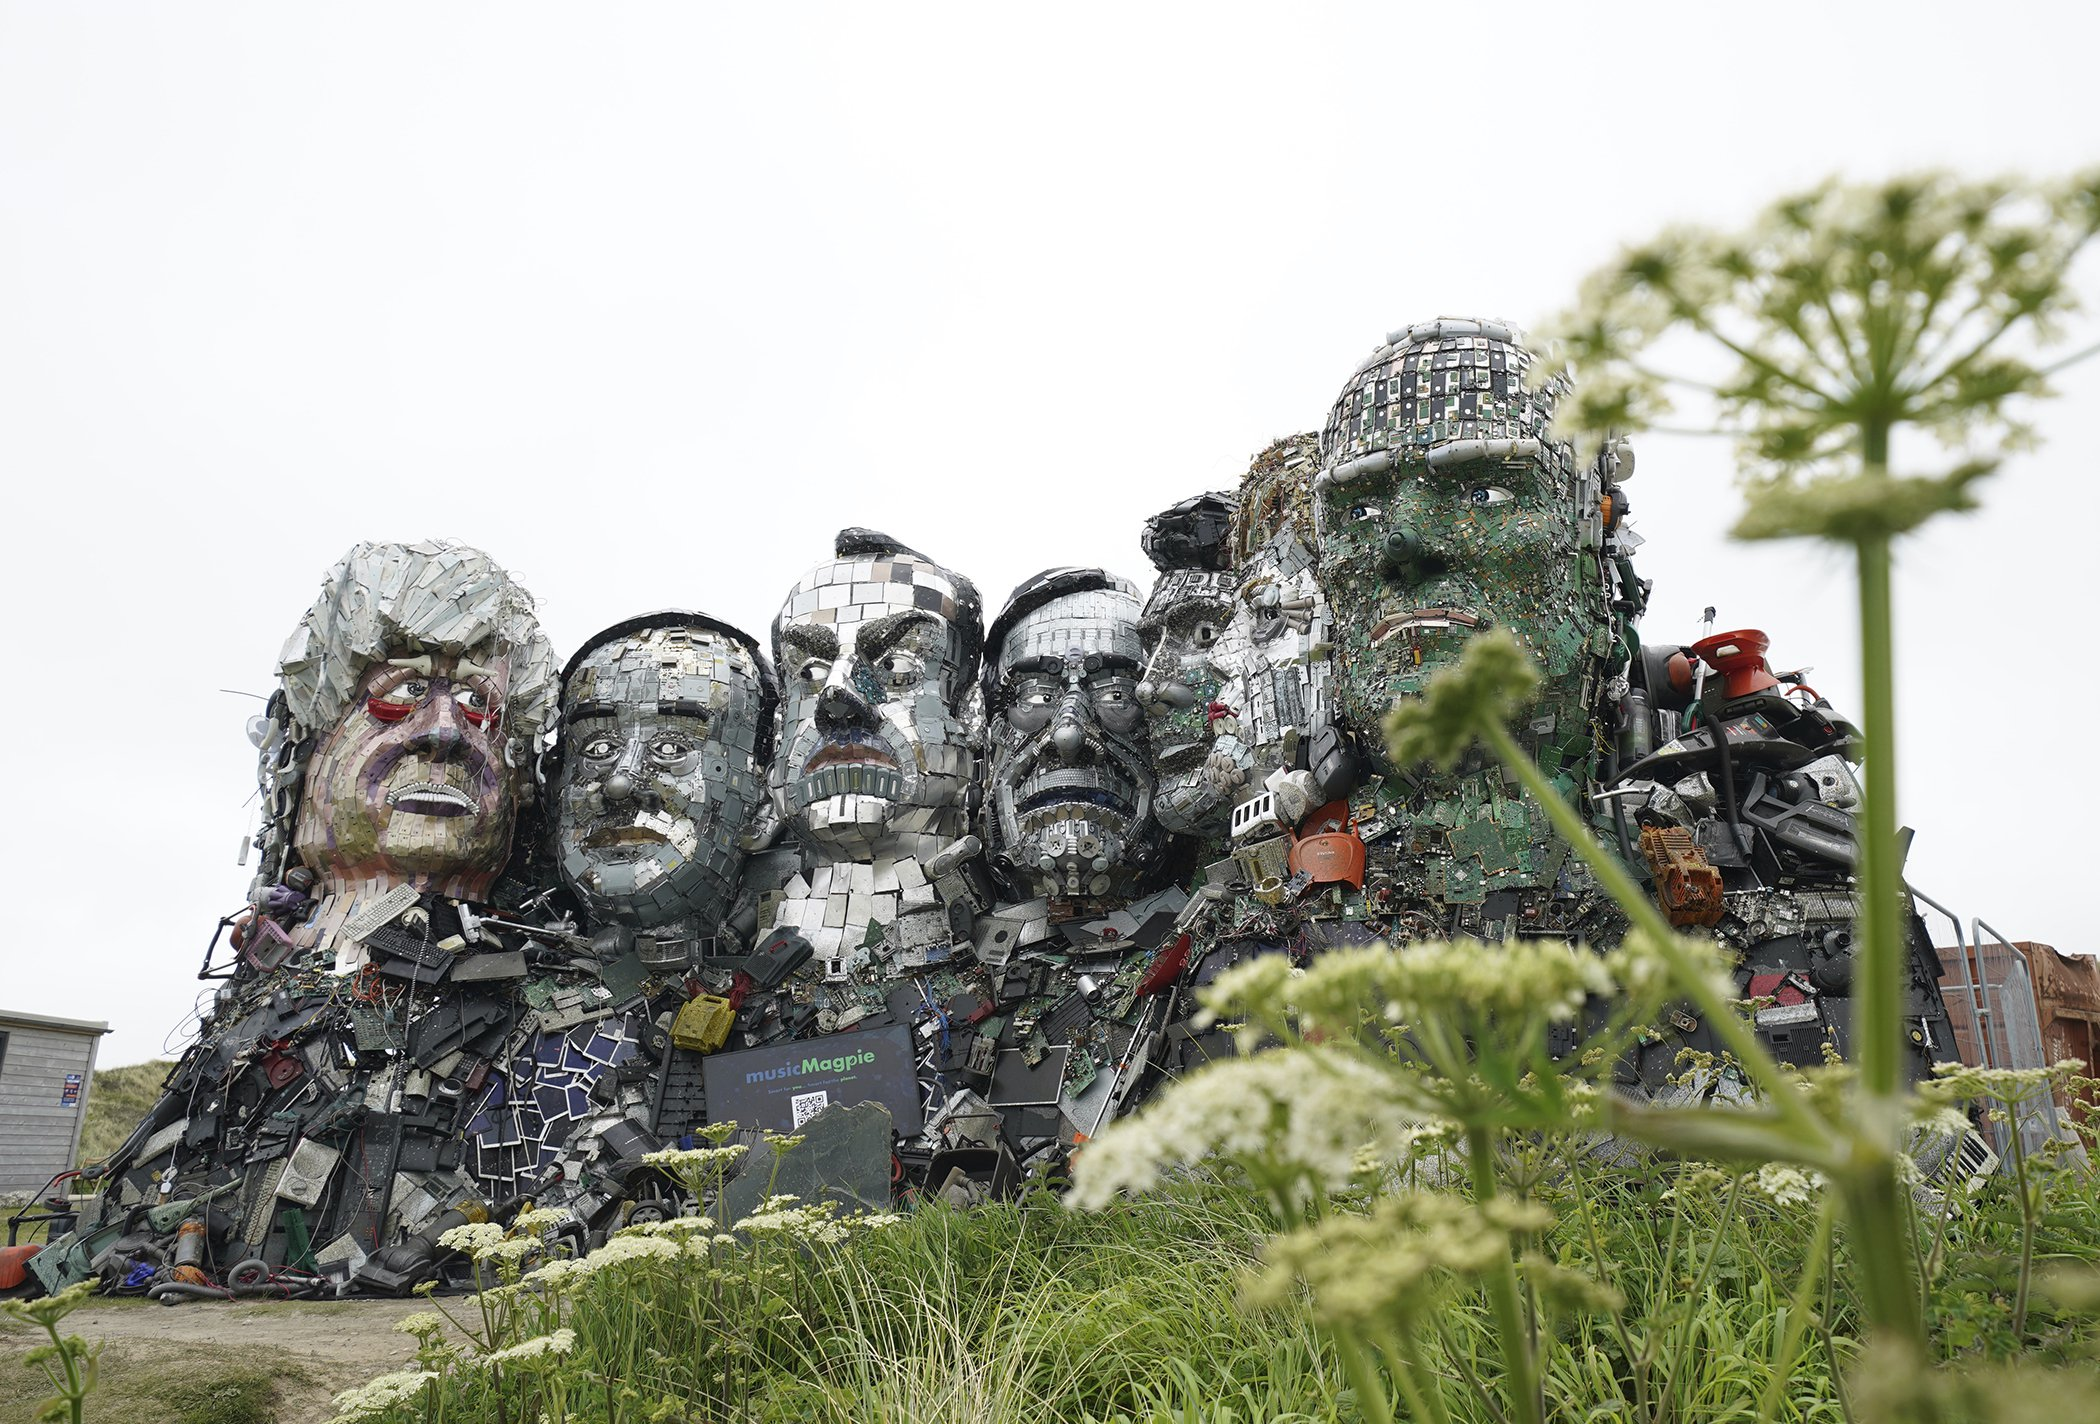 G7-Cornwall-Climate-Protests-Mount-Rushmore-Recyclemore.jpg